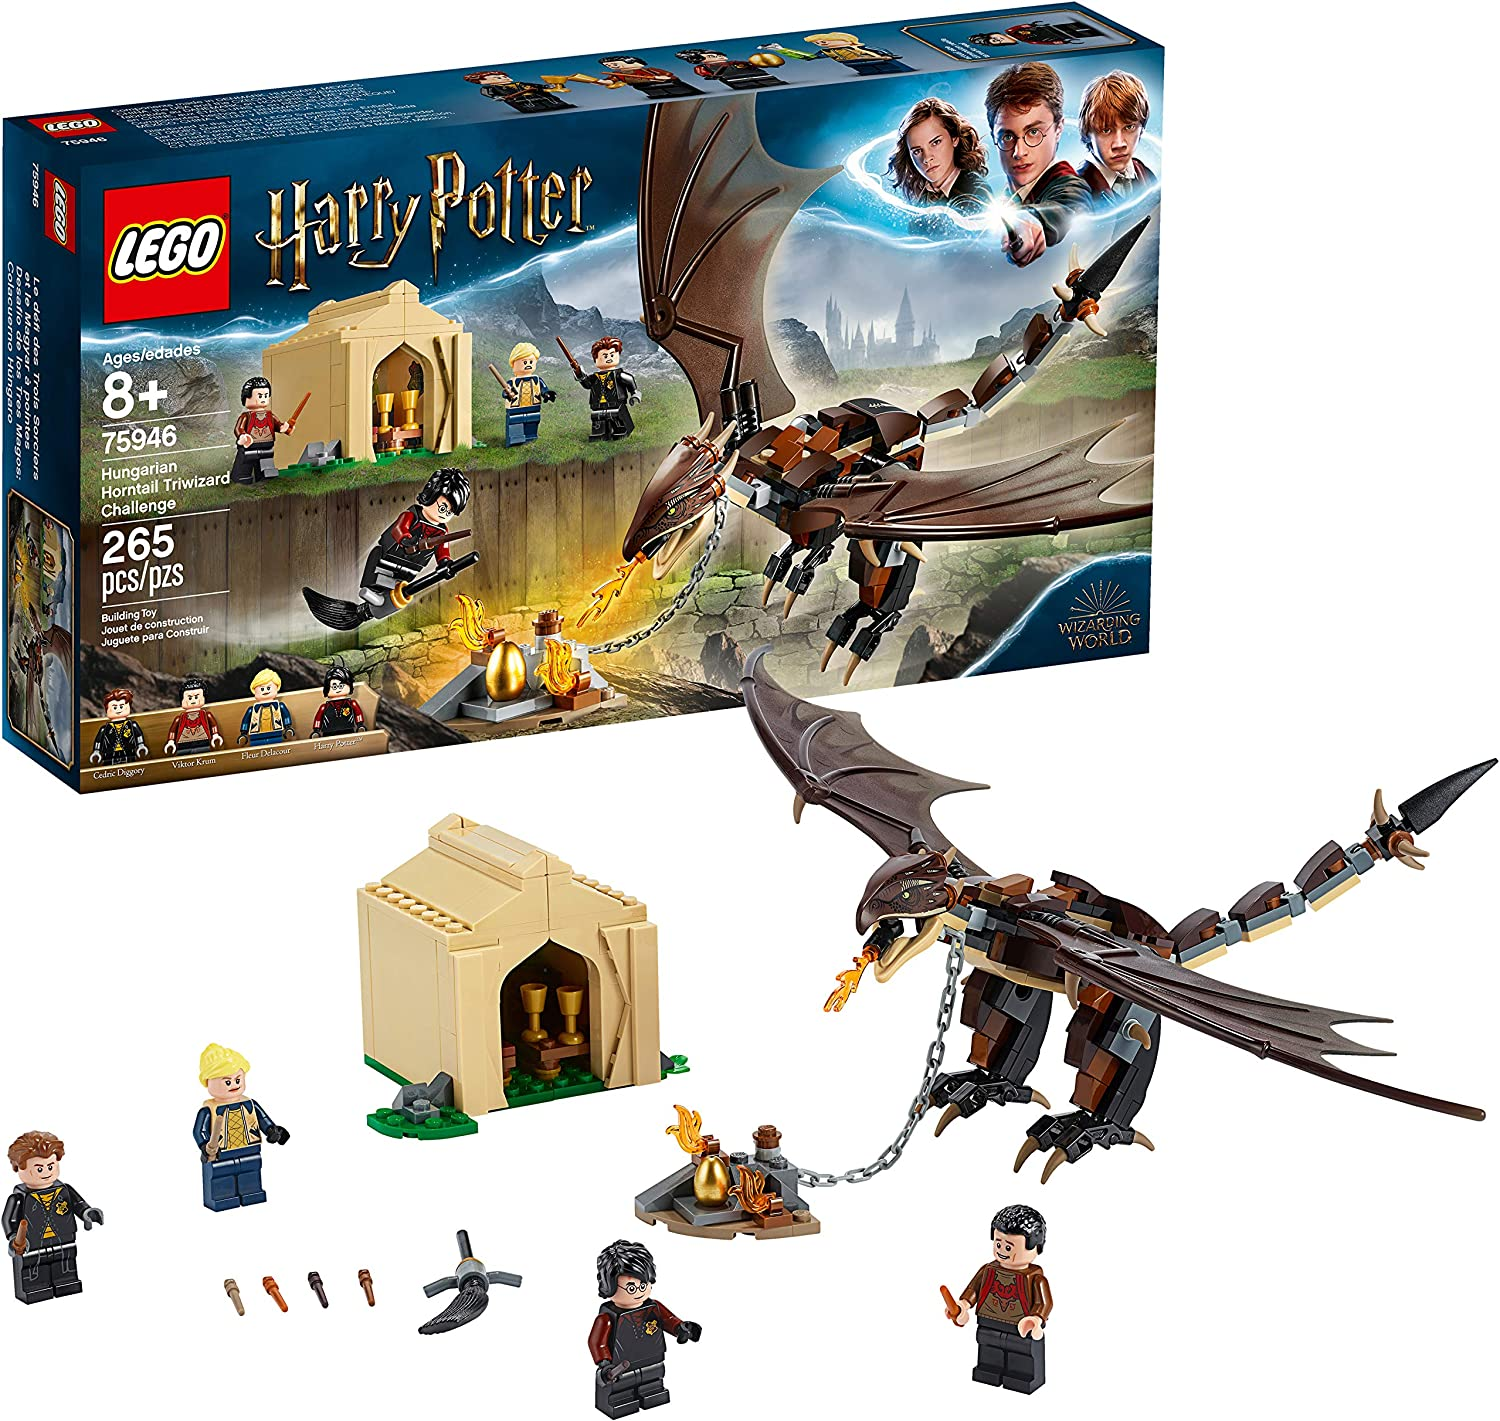 Lego Harry Potter And The Goblet Of Fire Hungarian Horntail Triwizard Challenge 75946 Building Kit 265 Pieces Toys Games